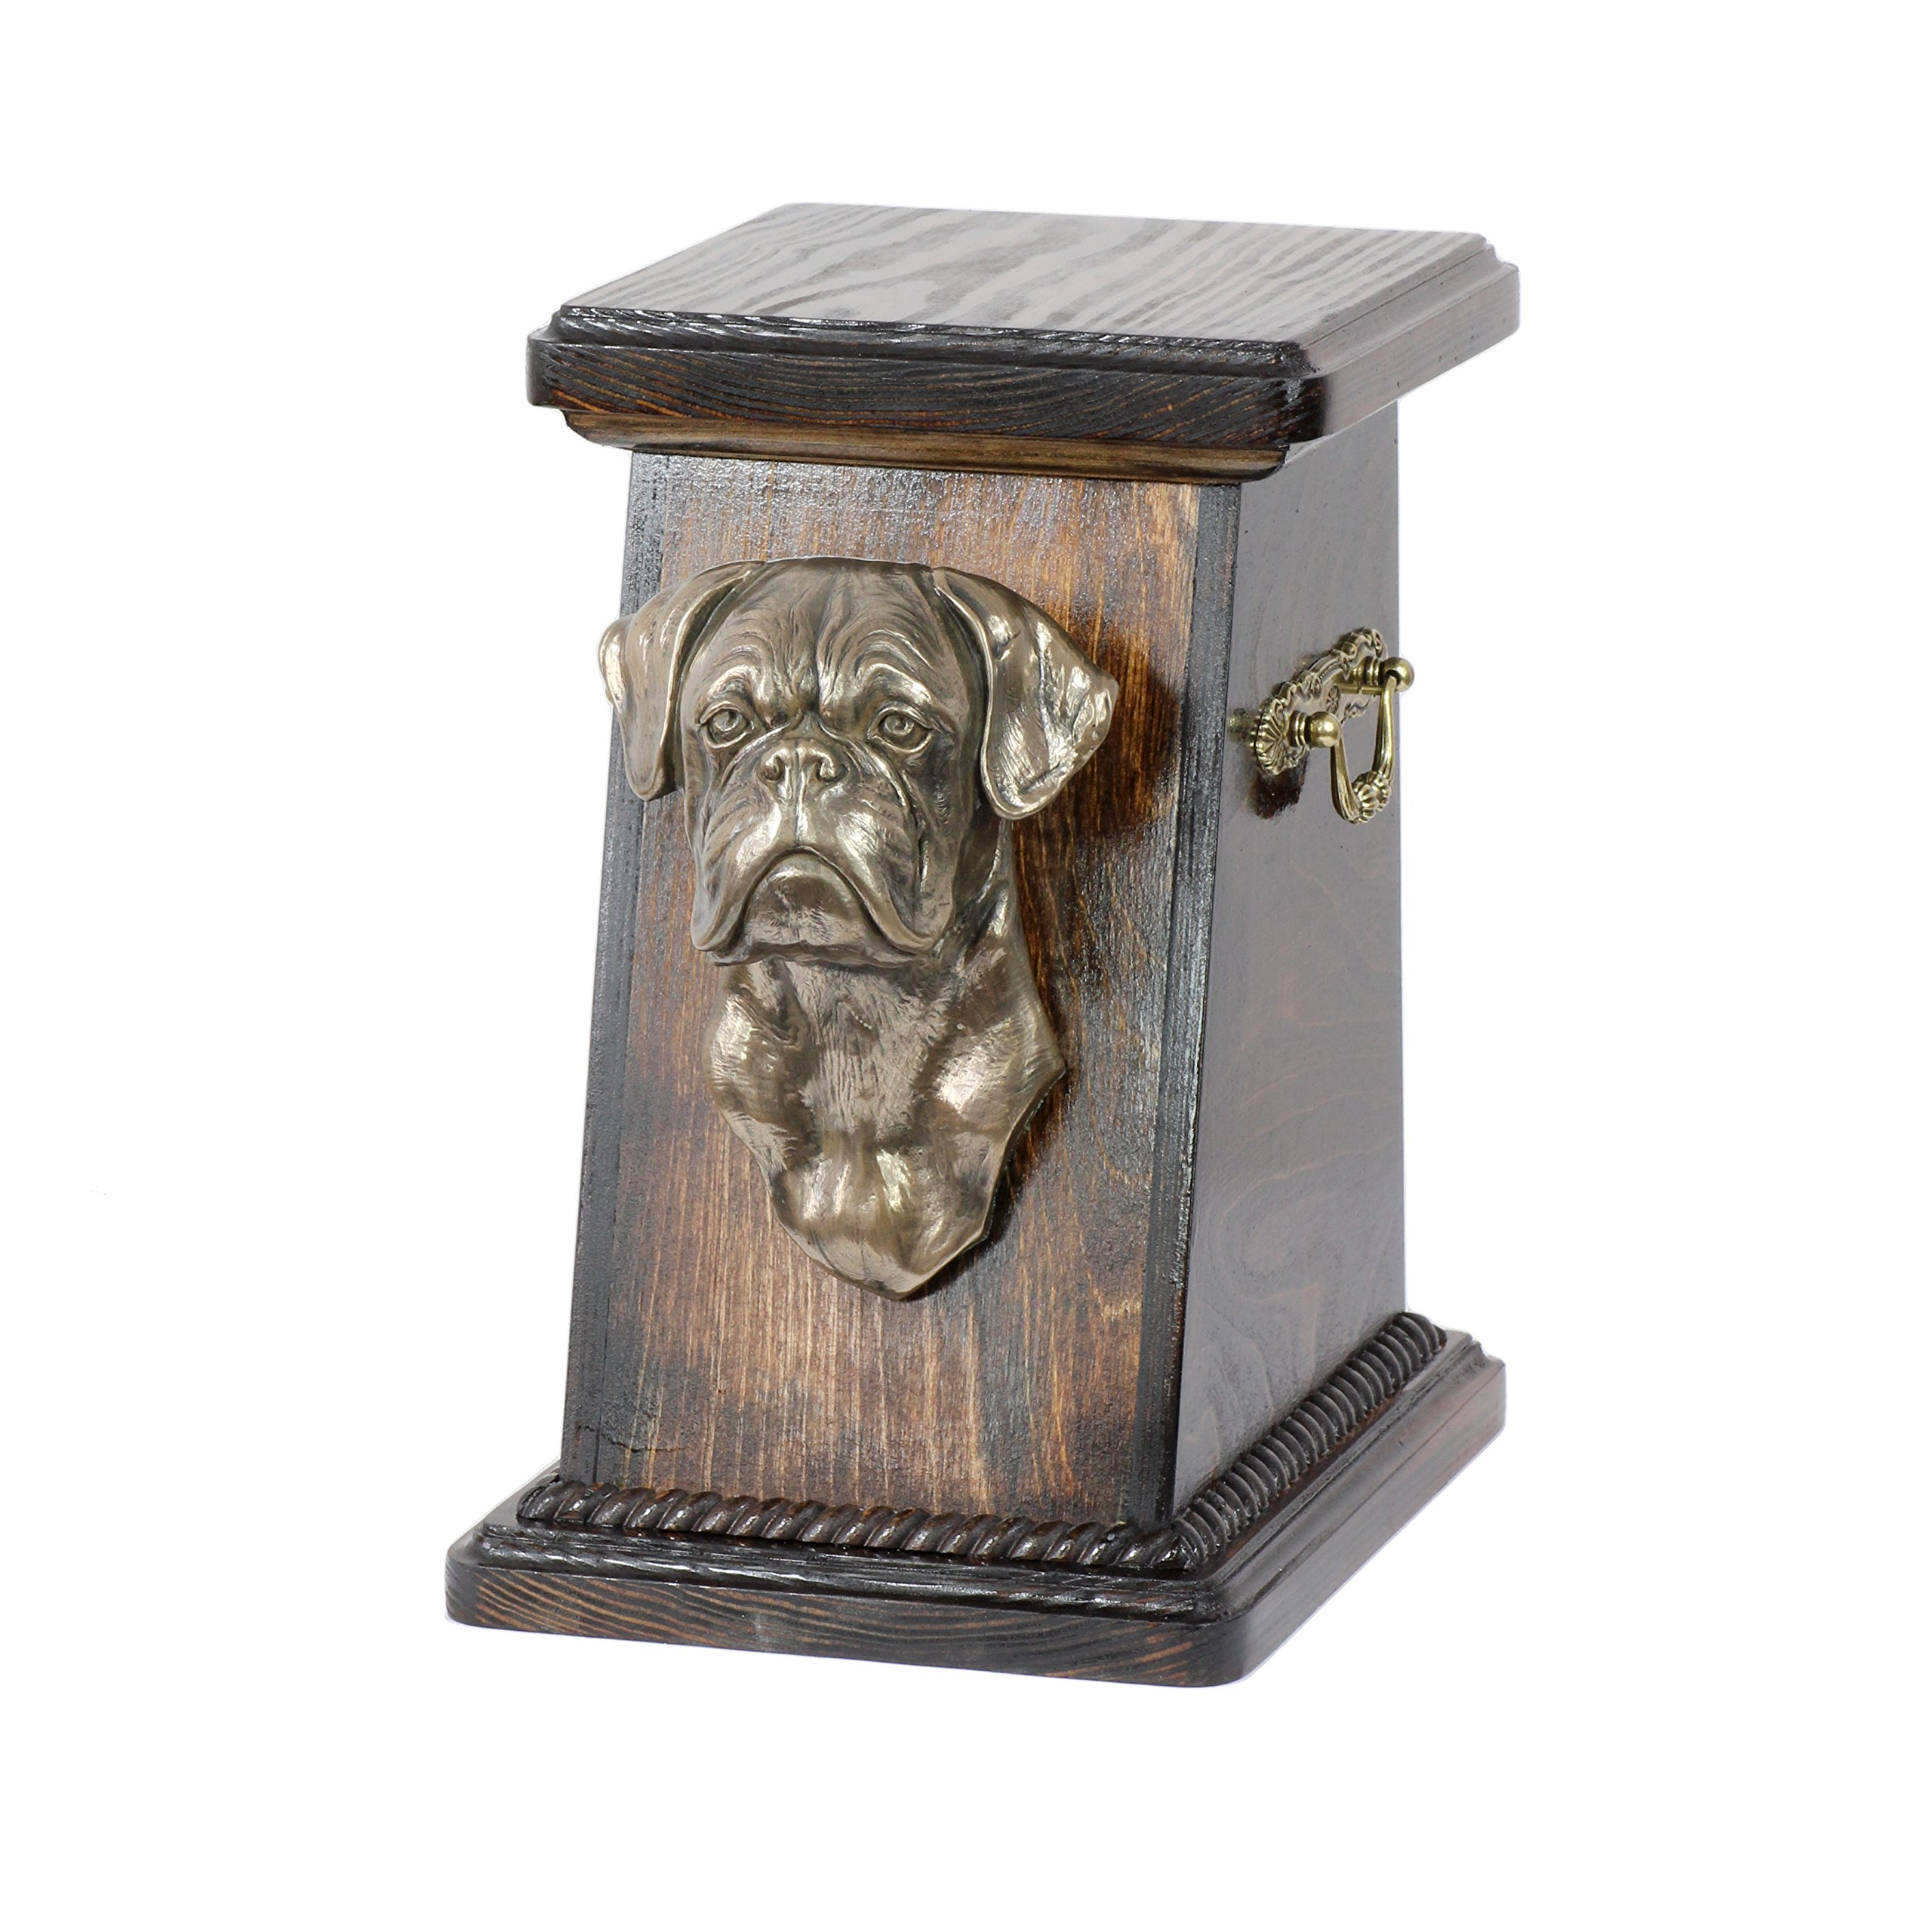 Boxer (second), memorial, urn for dog's ashes, with dog statue, ArtDog